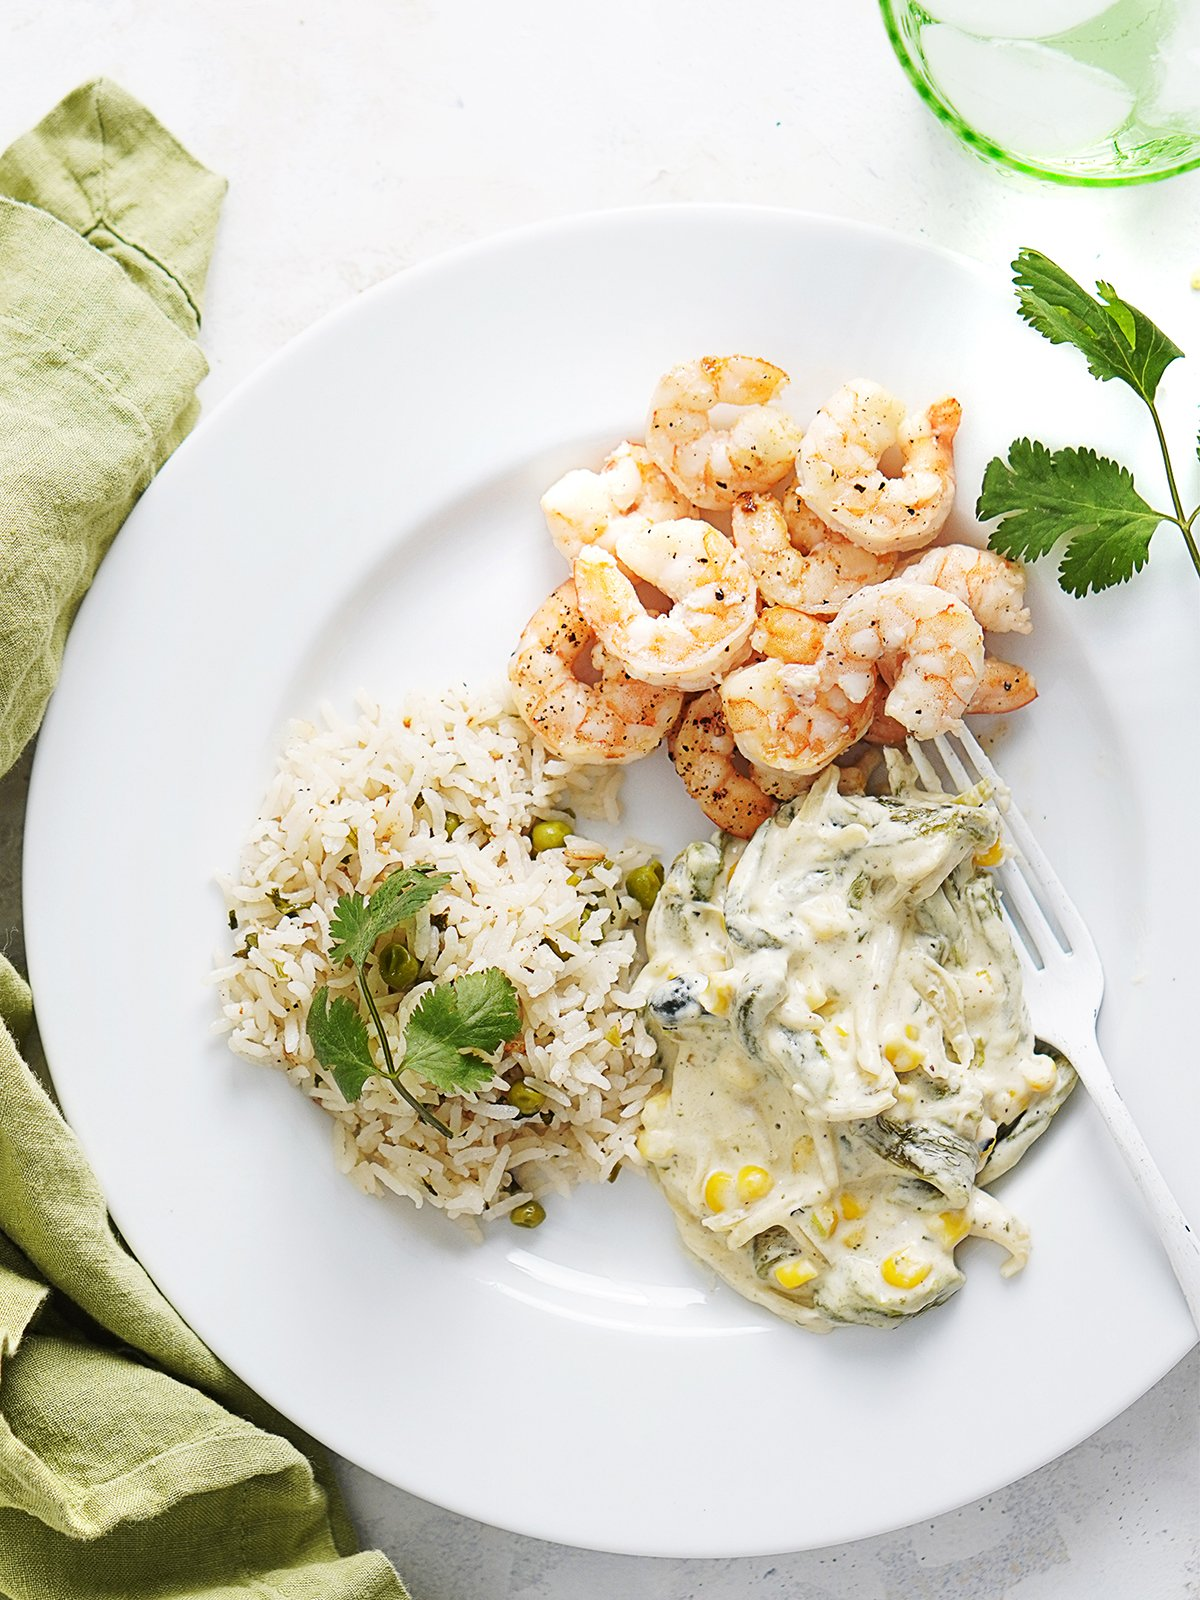 A white plate with rajas, rice and shrimp with a green napkin on the side.